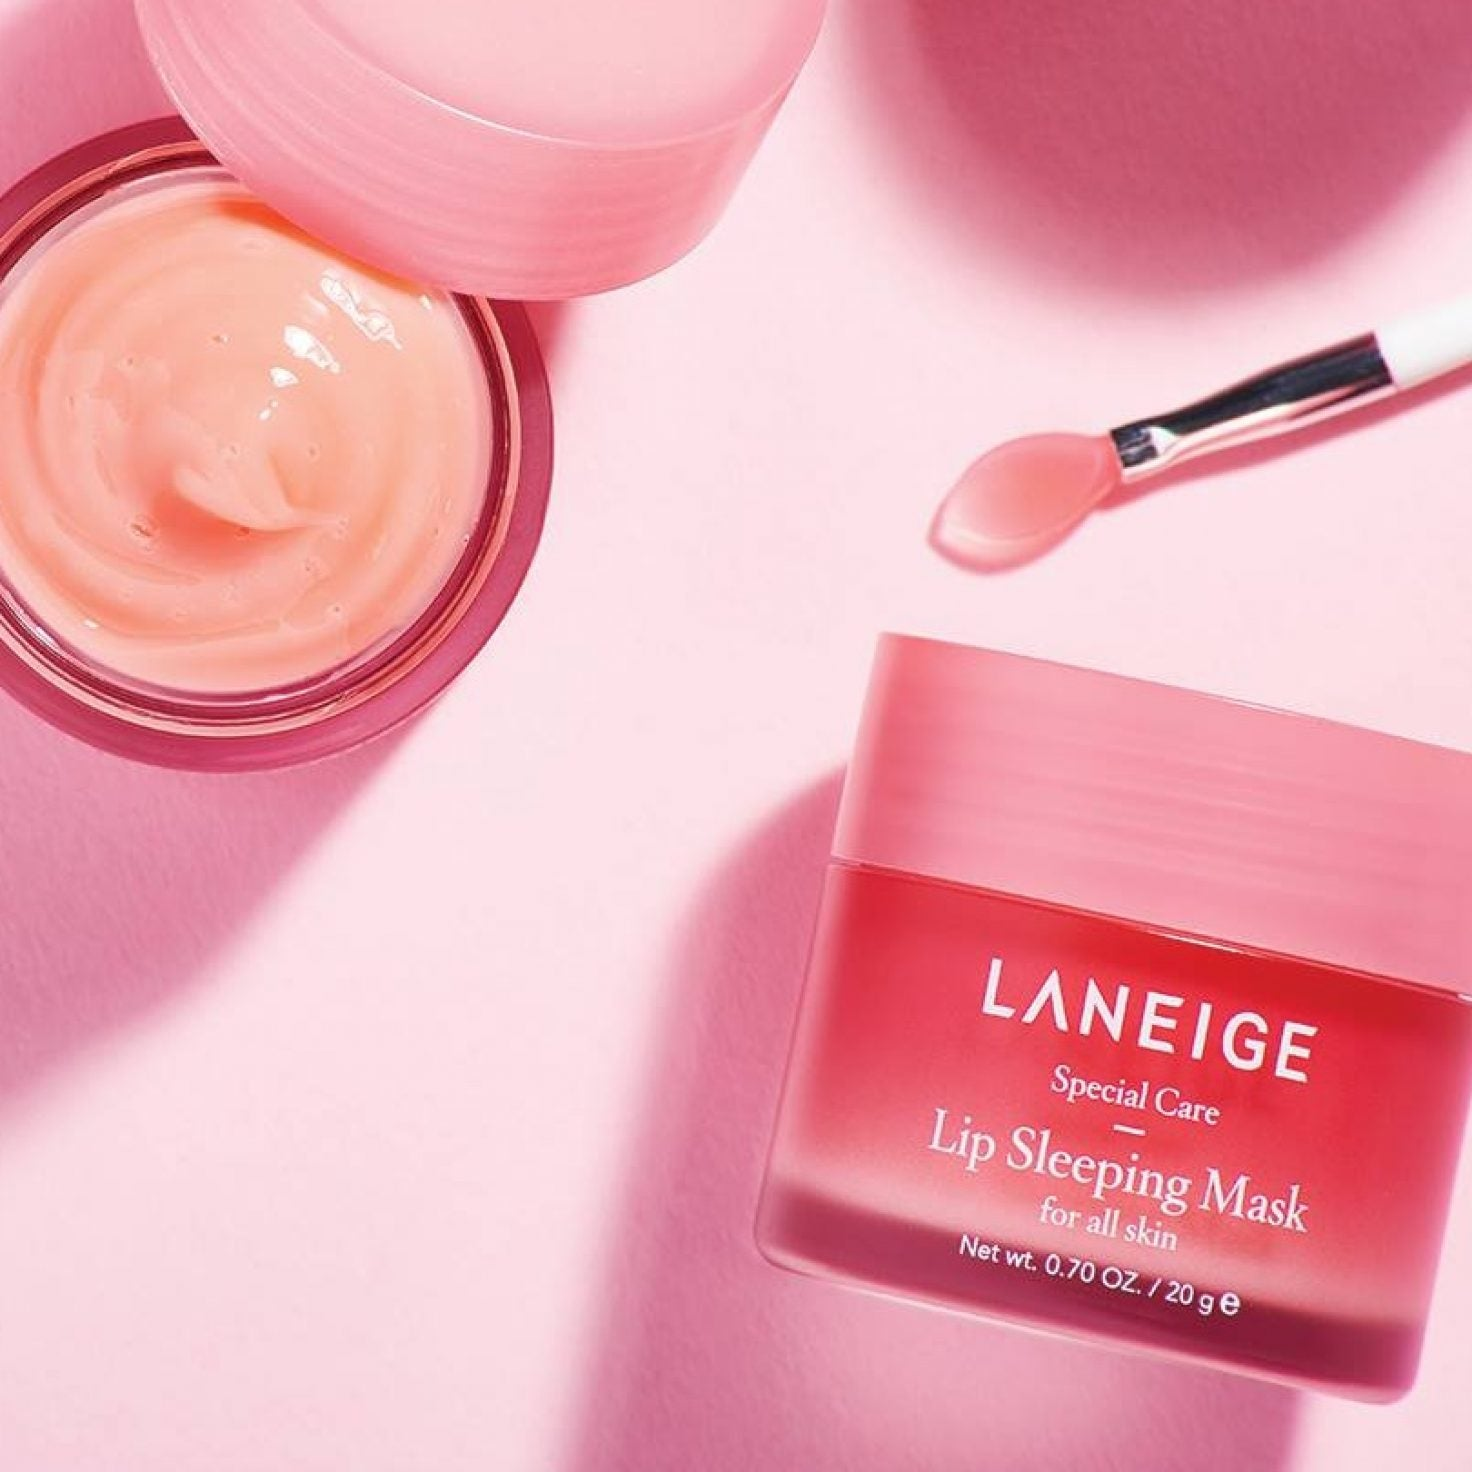 This Must-Have Mask Brings Your Lips Back To Life While You Sleep